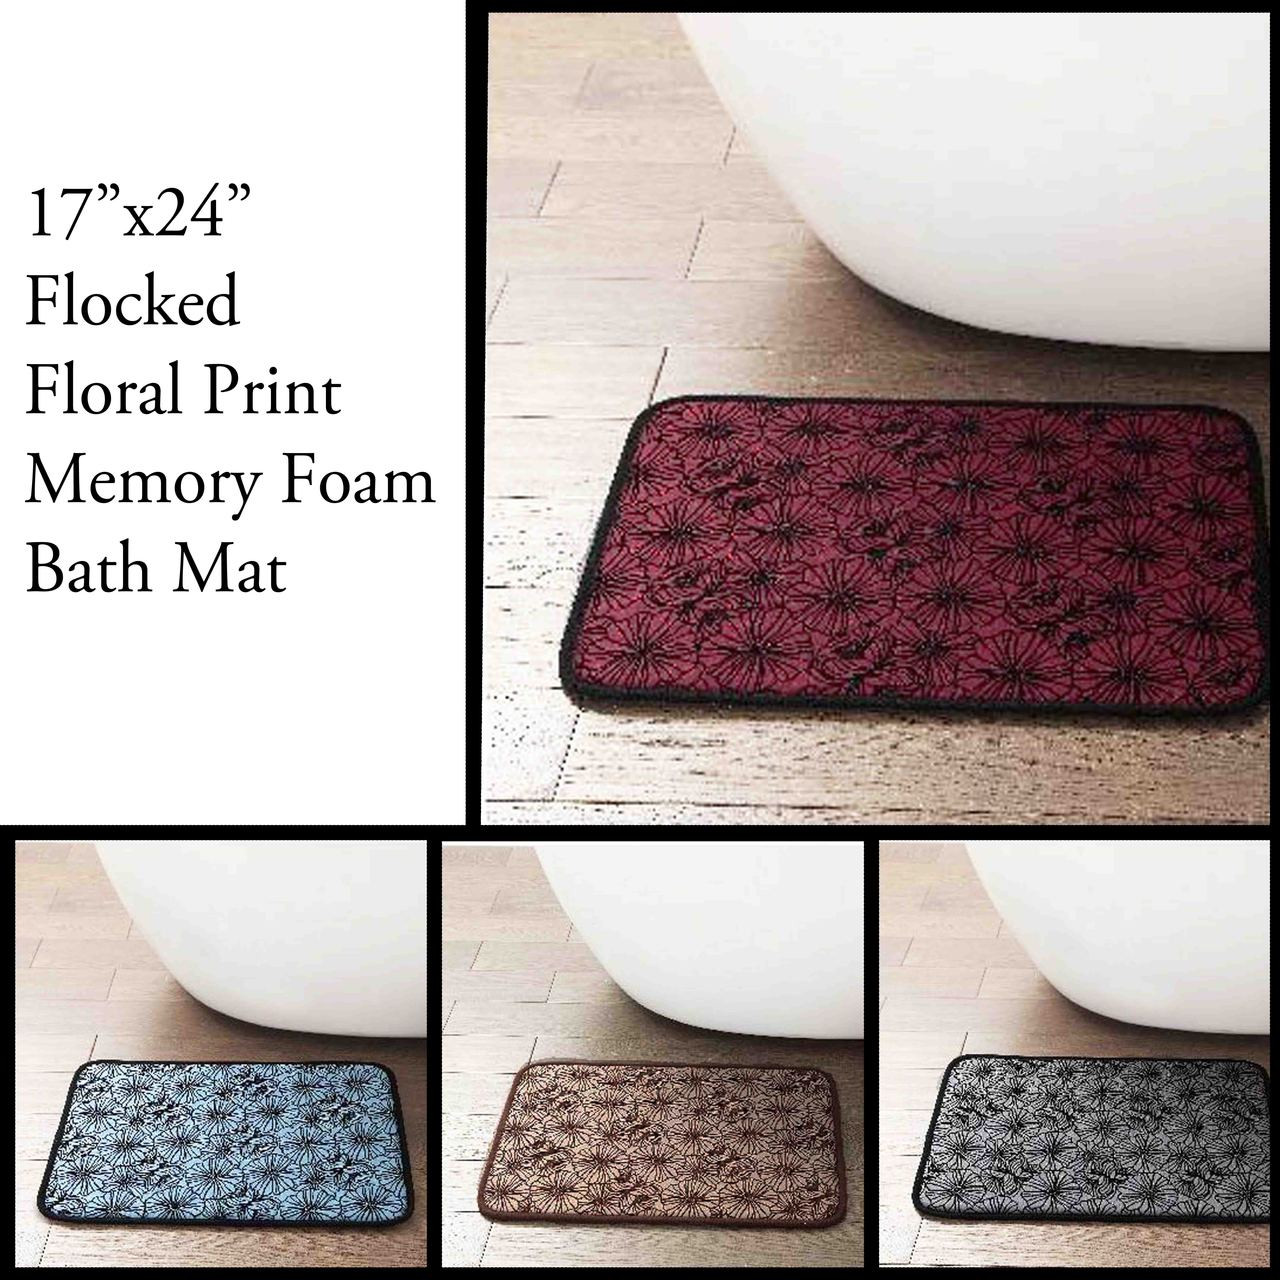 Memory Foam Bath Mat Area Rug With Flocked Floral Pattern 17 X 24